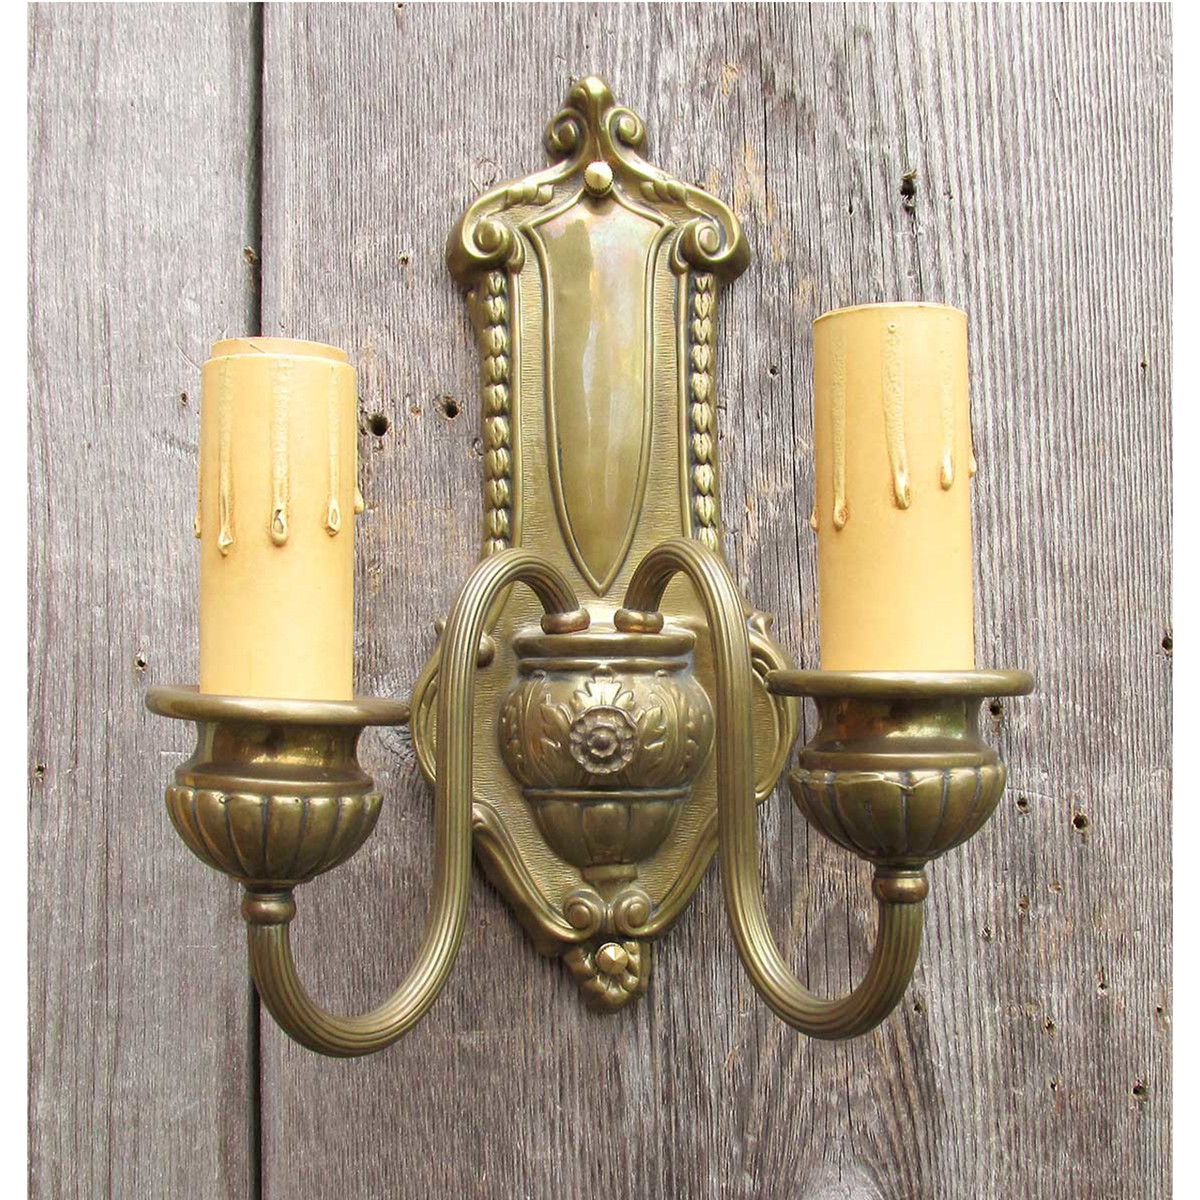 606874 - Antique Neoclassical Double Candle Arm Wall Sconce